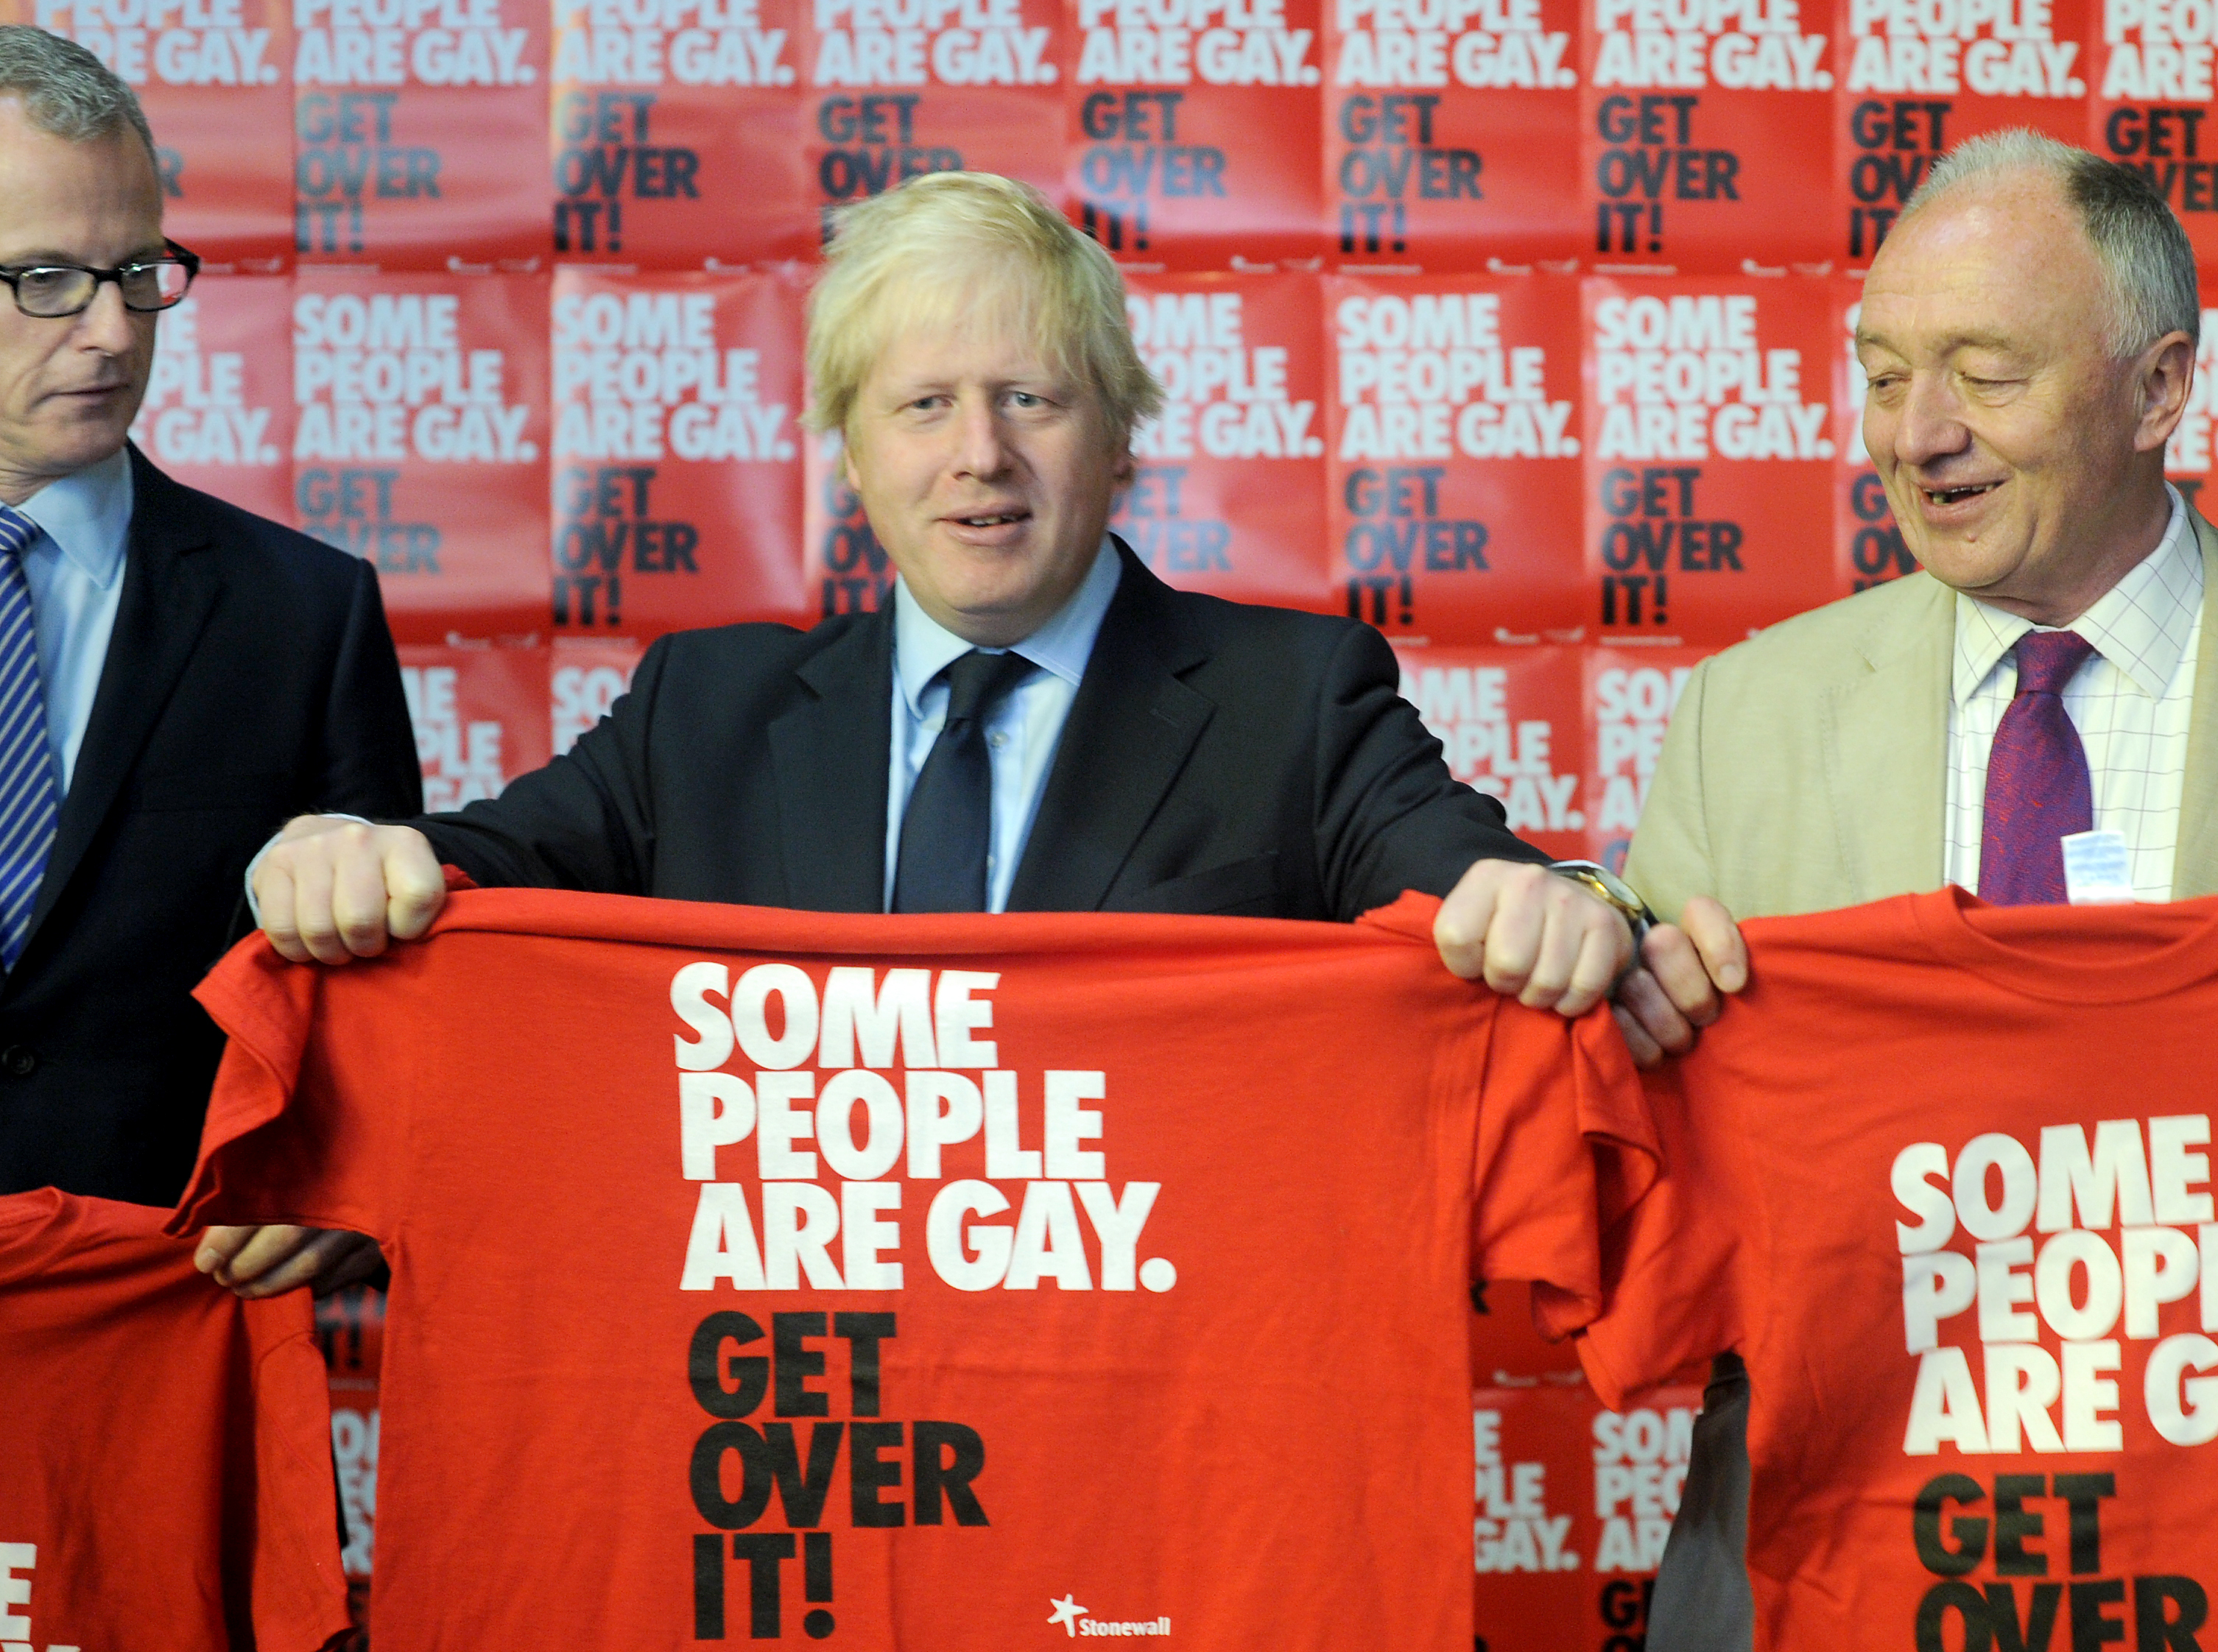 Candidates (left - right) Brian Paddick, Boris Johnson and Ken Livingstone attend the London Gay Mayoral Hustings hosted by Stonewall at the British Film Institute, London. PRESS ASSOCIATION Photo. Picture date: Saturday April 14, 2012. Watch for PA story POLITICS Mayor. Photo credit should read: Anthony Devlin/PA Wire